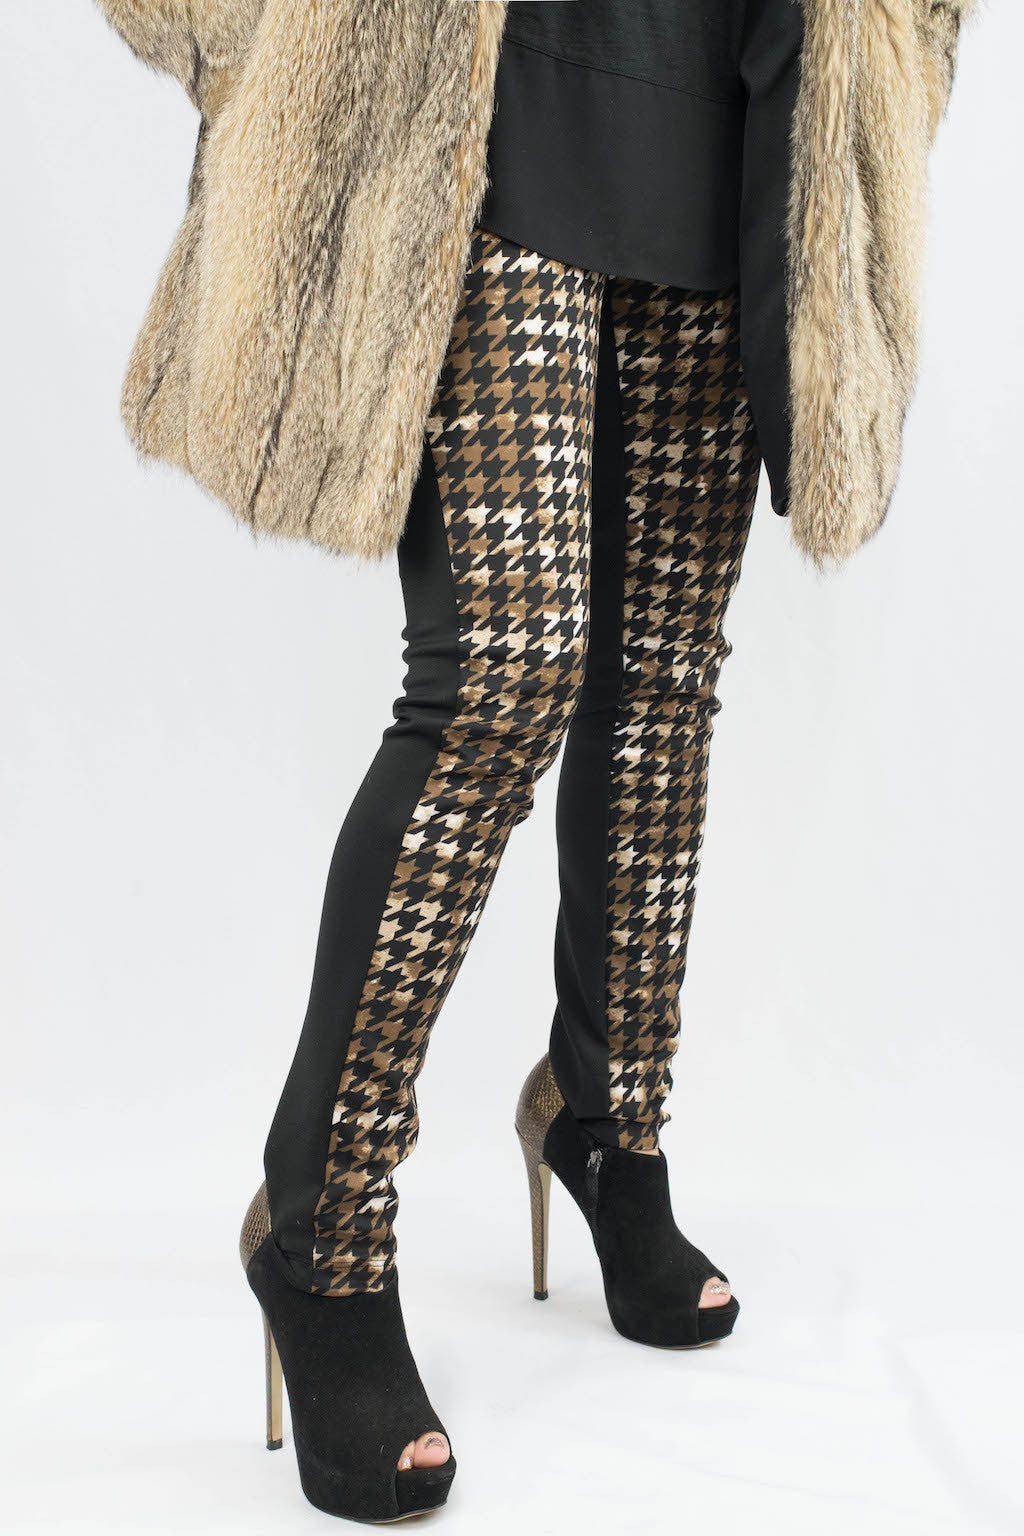 Kylie Houndstooth Color Block Pants - ANA MARIA KIM  - 2